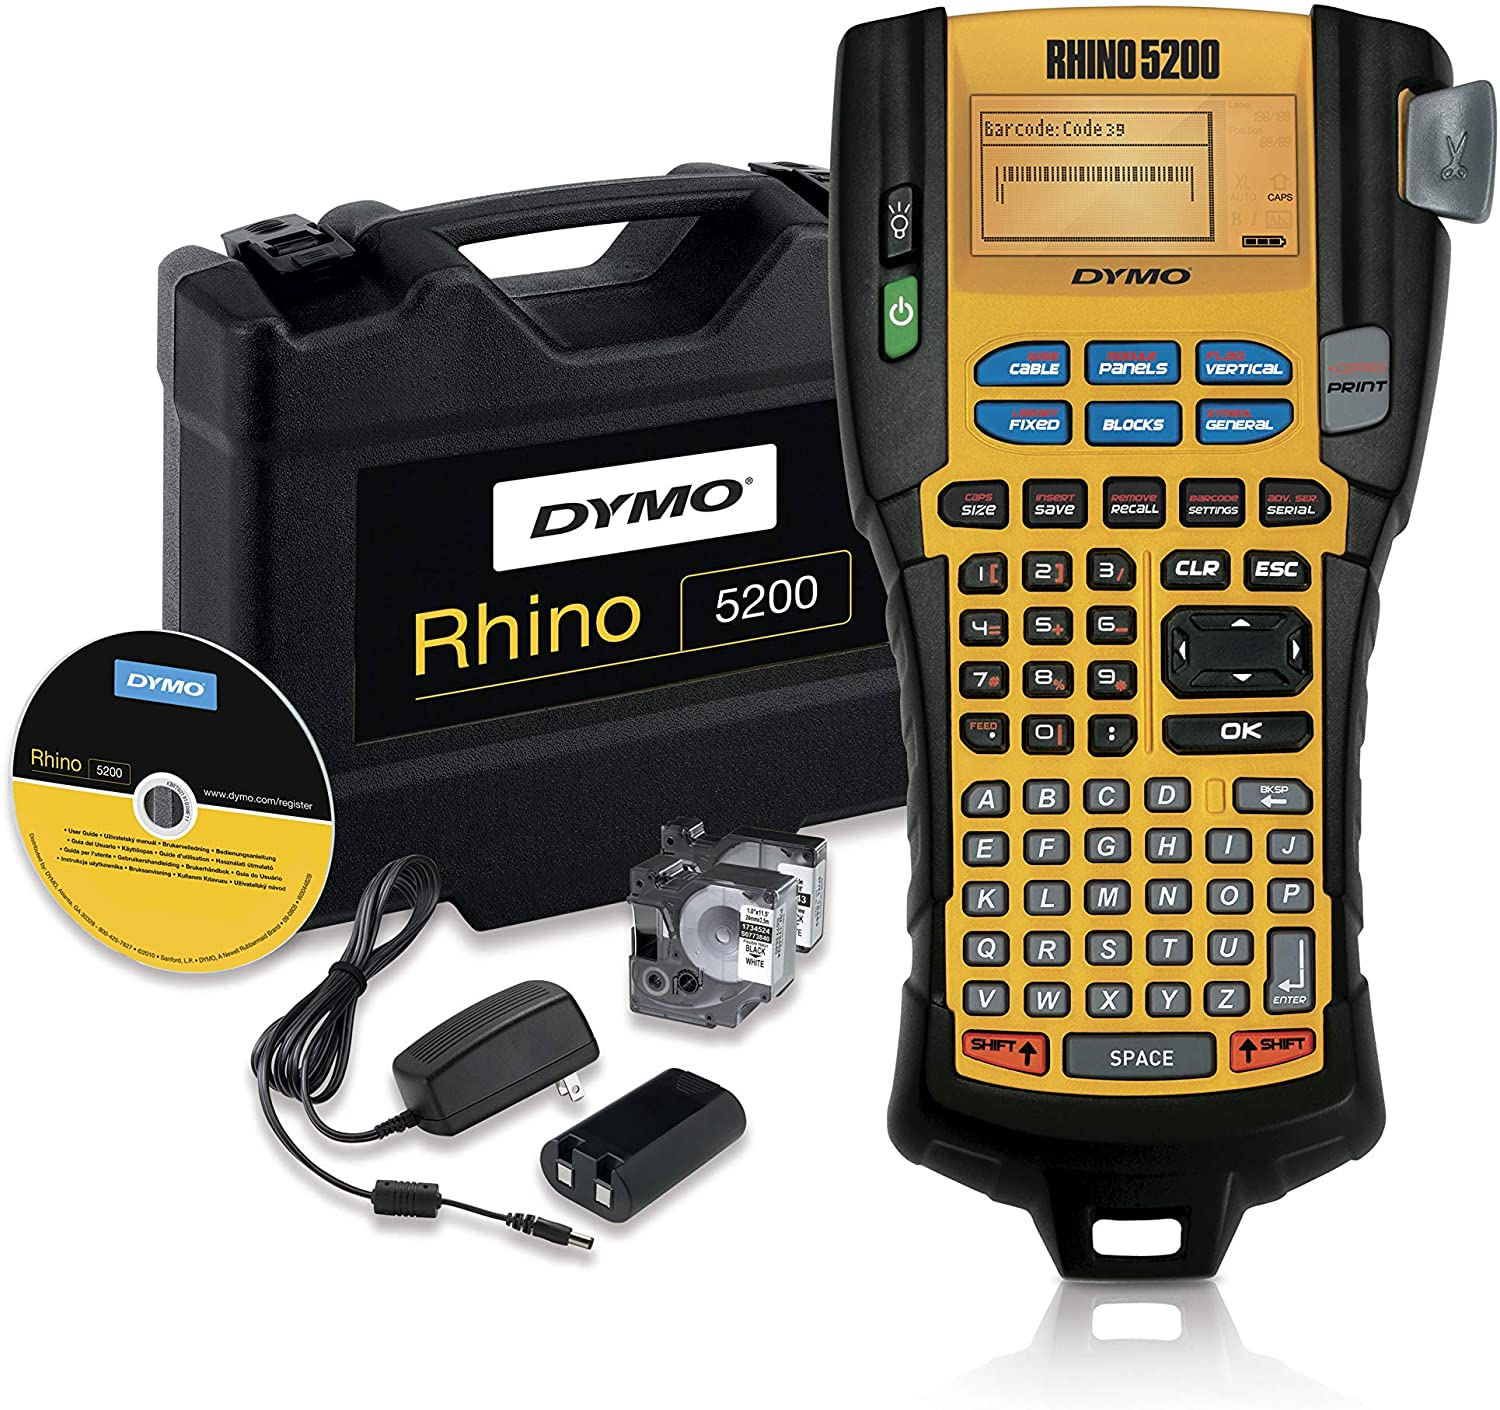 DYMO Industrial Label Maker & Carry Case | RhinoPRO 5200 Label Maker, For Job Sites and Heavy-Duty Labeling Jobs, Prints Fast, Includes 2 Rolls of DYMO Industrial Vinyl Labels: Office Products